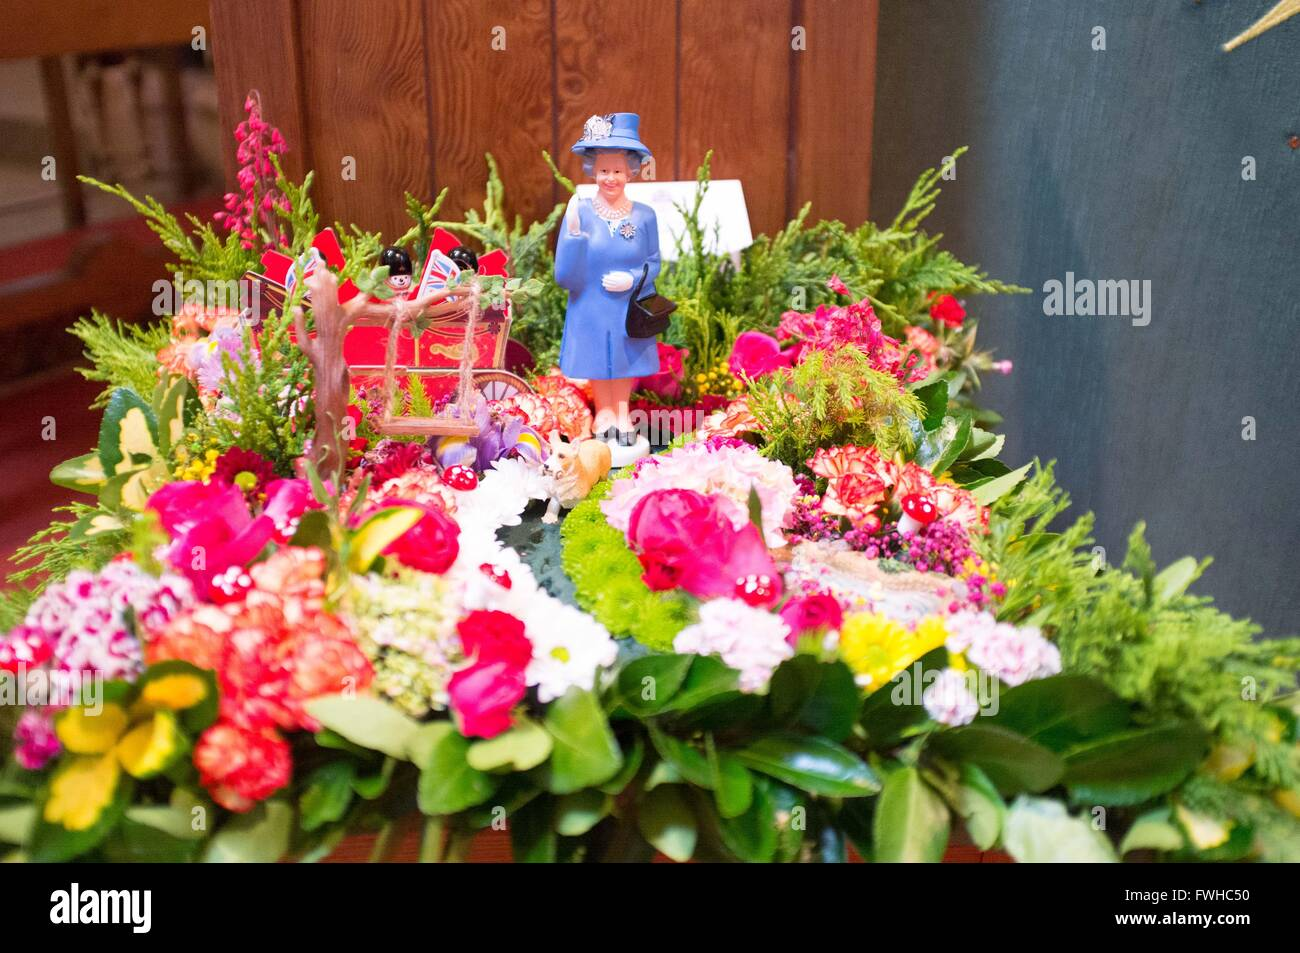 Ascot uk 12th june 2016 st peters church cranbourne flower 12th june 2016 st peters church cranbourne flower festival some of the arrangements commemorated the 90th birthday of the queen izmirmasajfo